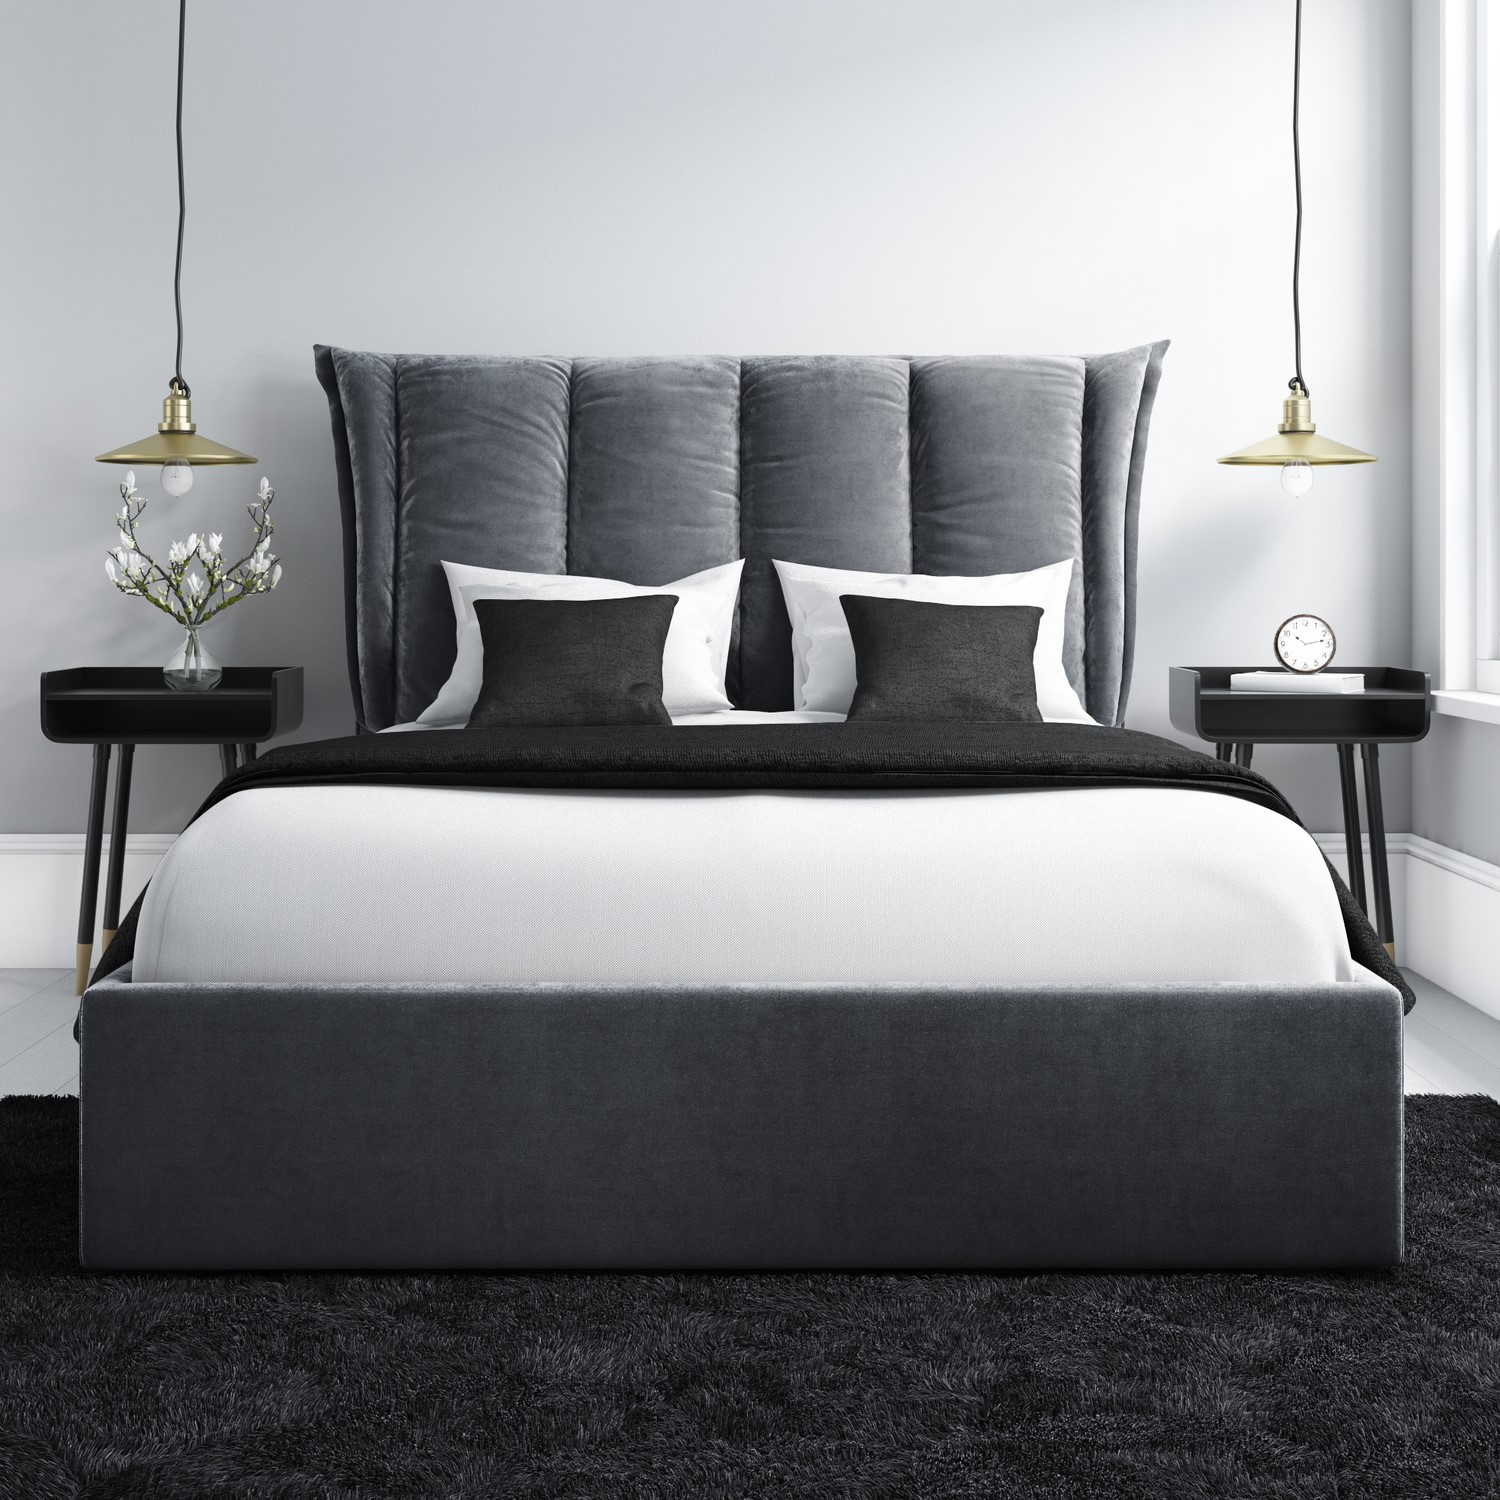 Maddox Double Ottoman Bed With Cushioned Headboard In Silver Grey Velvet Furniture123